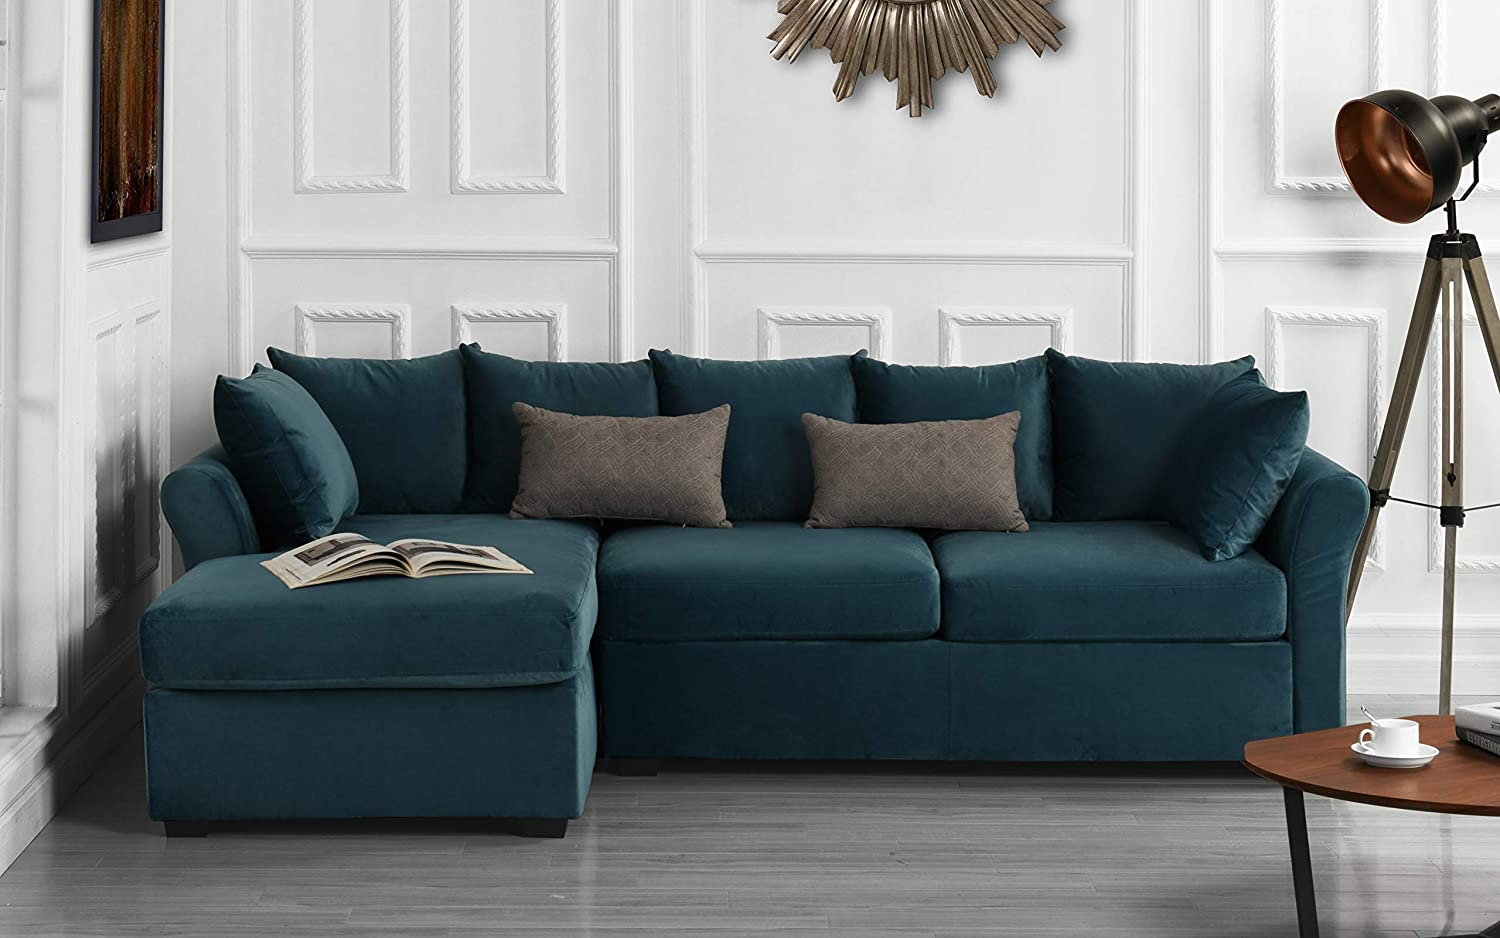 Amazon.com: Modern Large Velvet Sectional Sofa, L-Shape Couch with ...